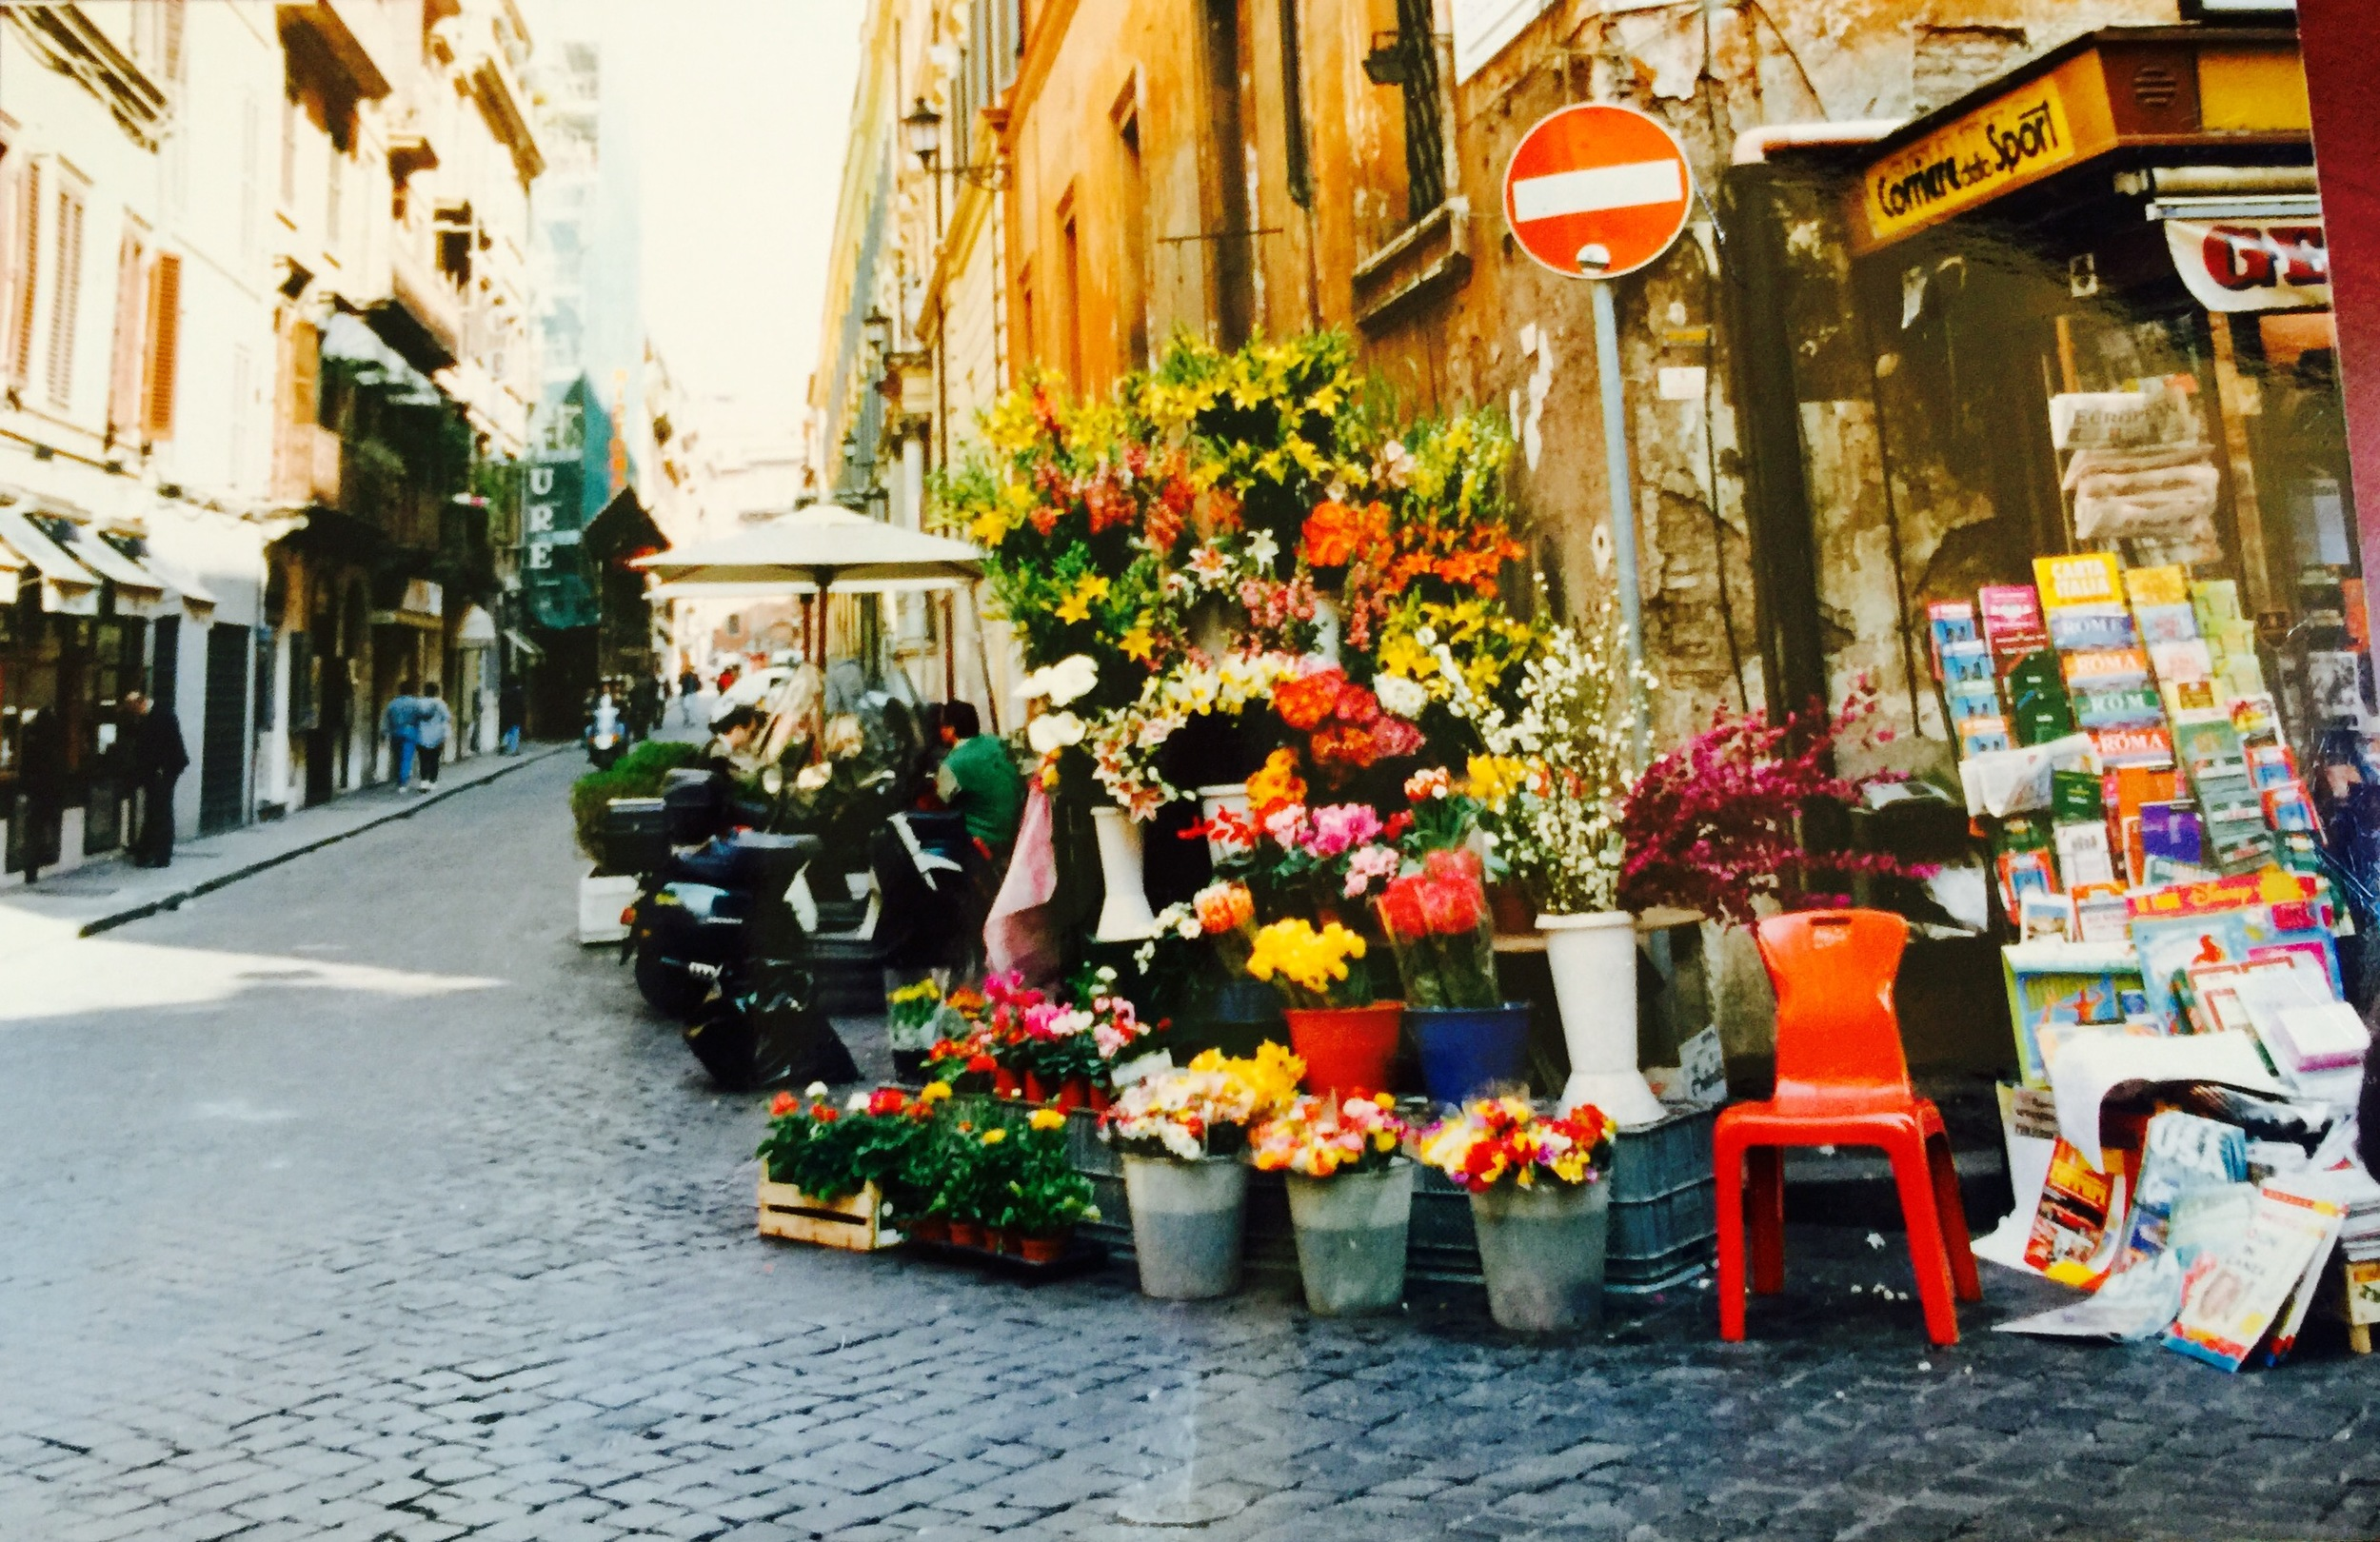 The street where I lived in Italy